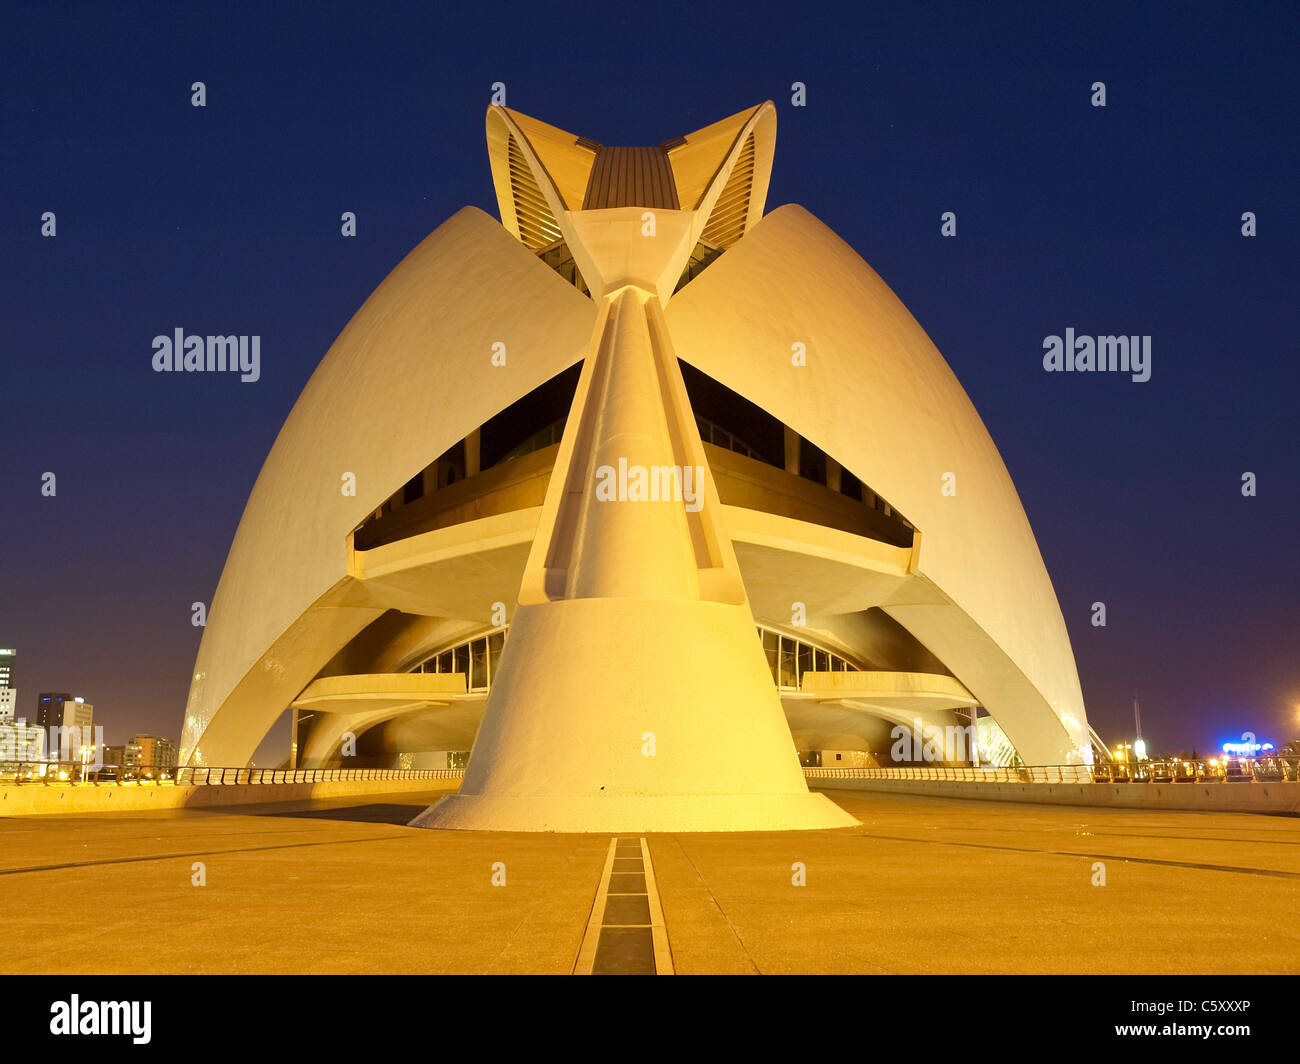 Valencia, Ciudad de las Artes y de las Ciencias, city of arts and science, Santiago Calatrava, Spain - Stock Image